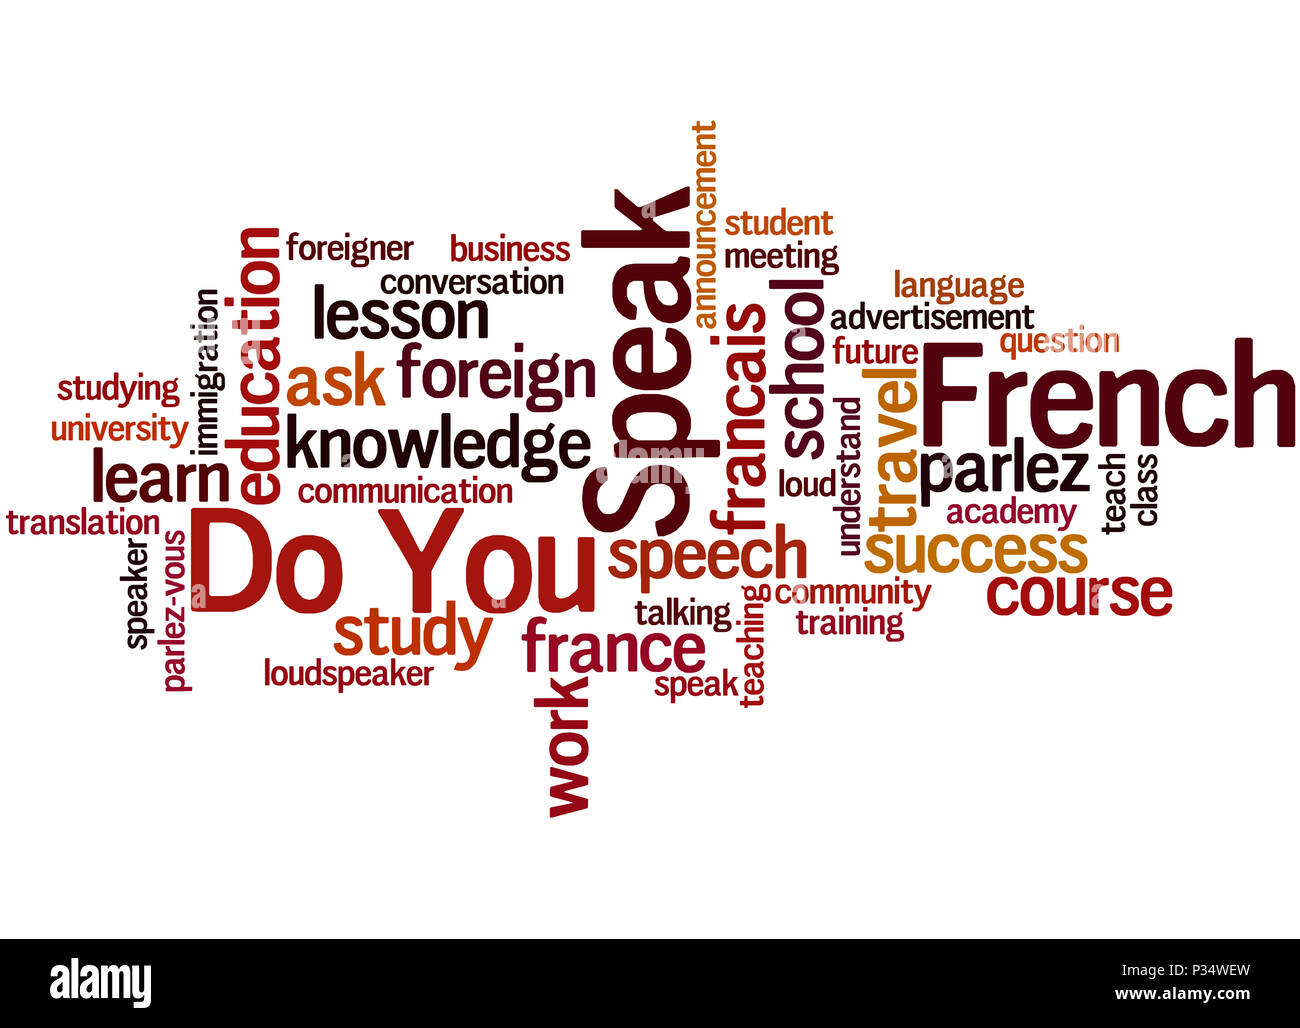 Do You Speak French, word cloud concept on white background. - Stock Image